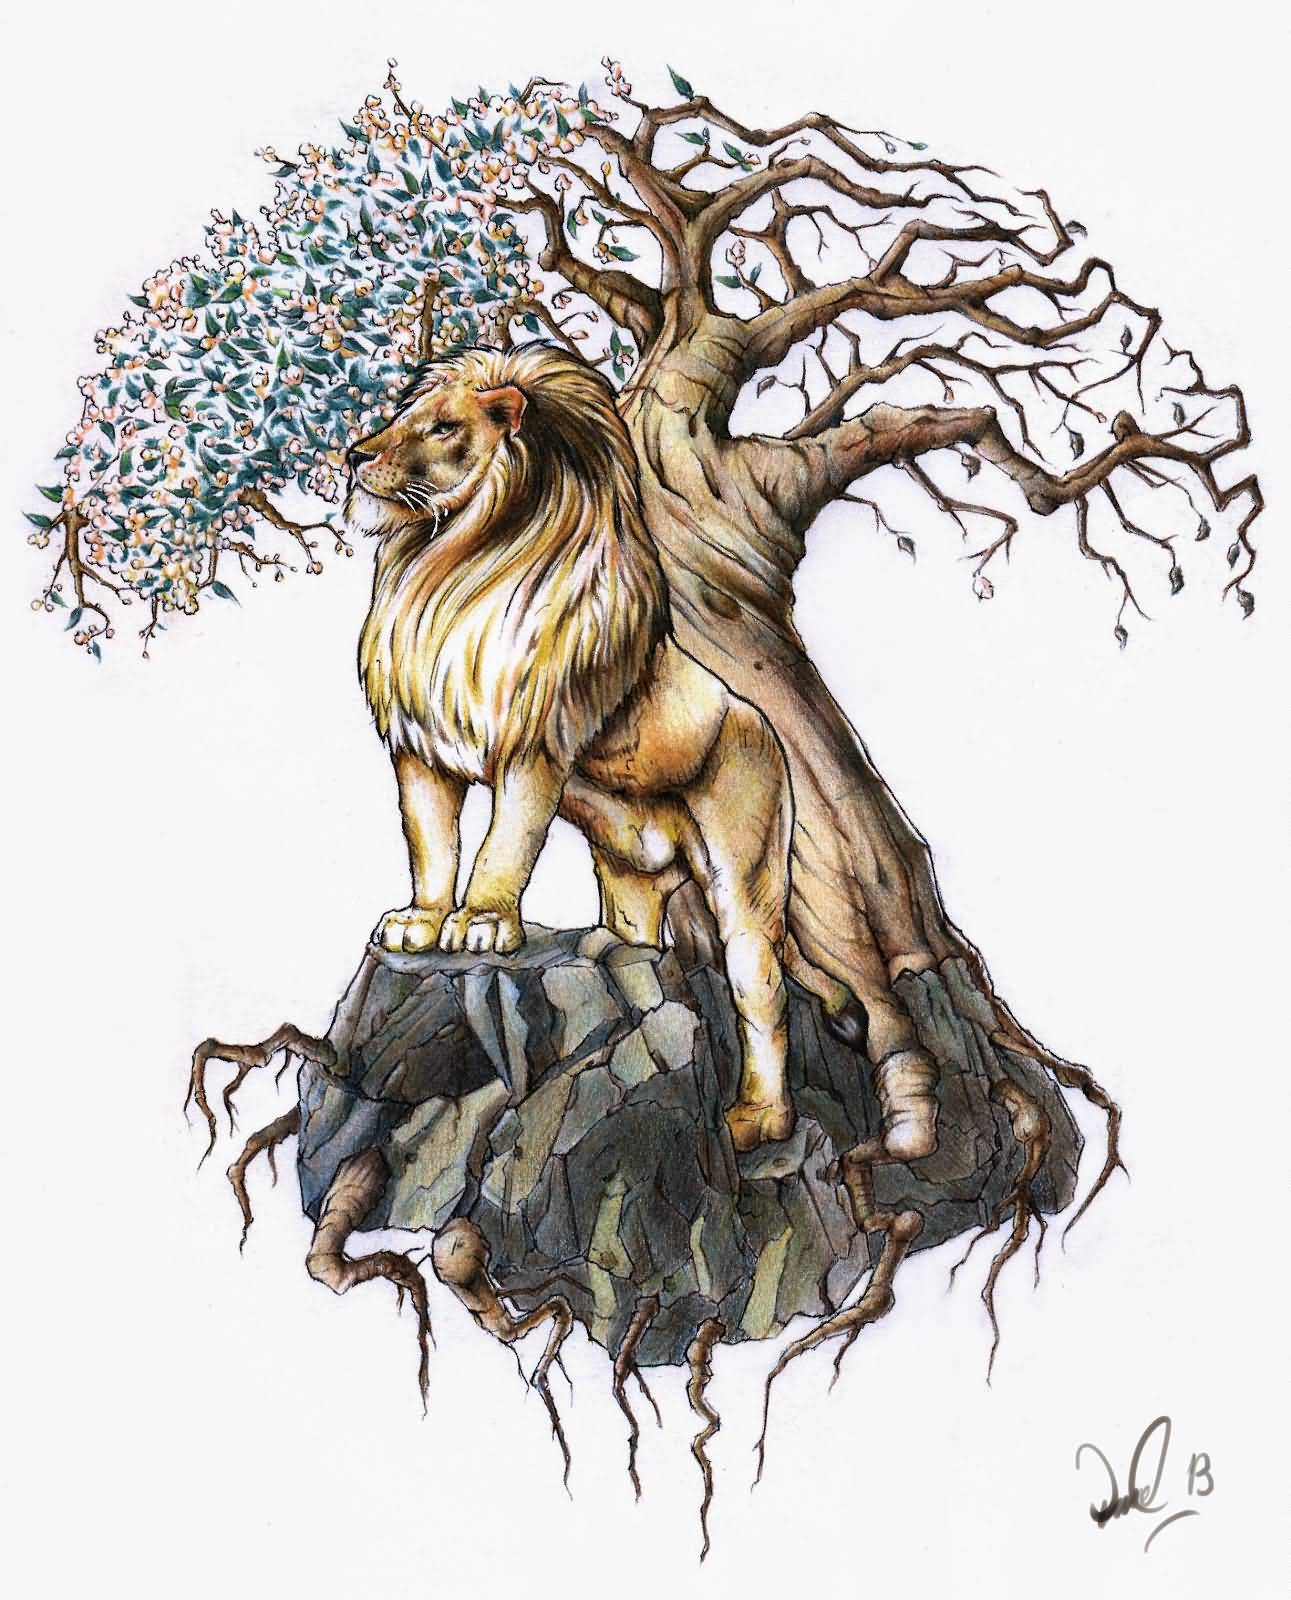 50 Latest Tree Of Life Tattoos Designs Chinese lion tattoos are a popular tattoo design in the western world. 50 latest tree of life tattoos designs